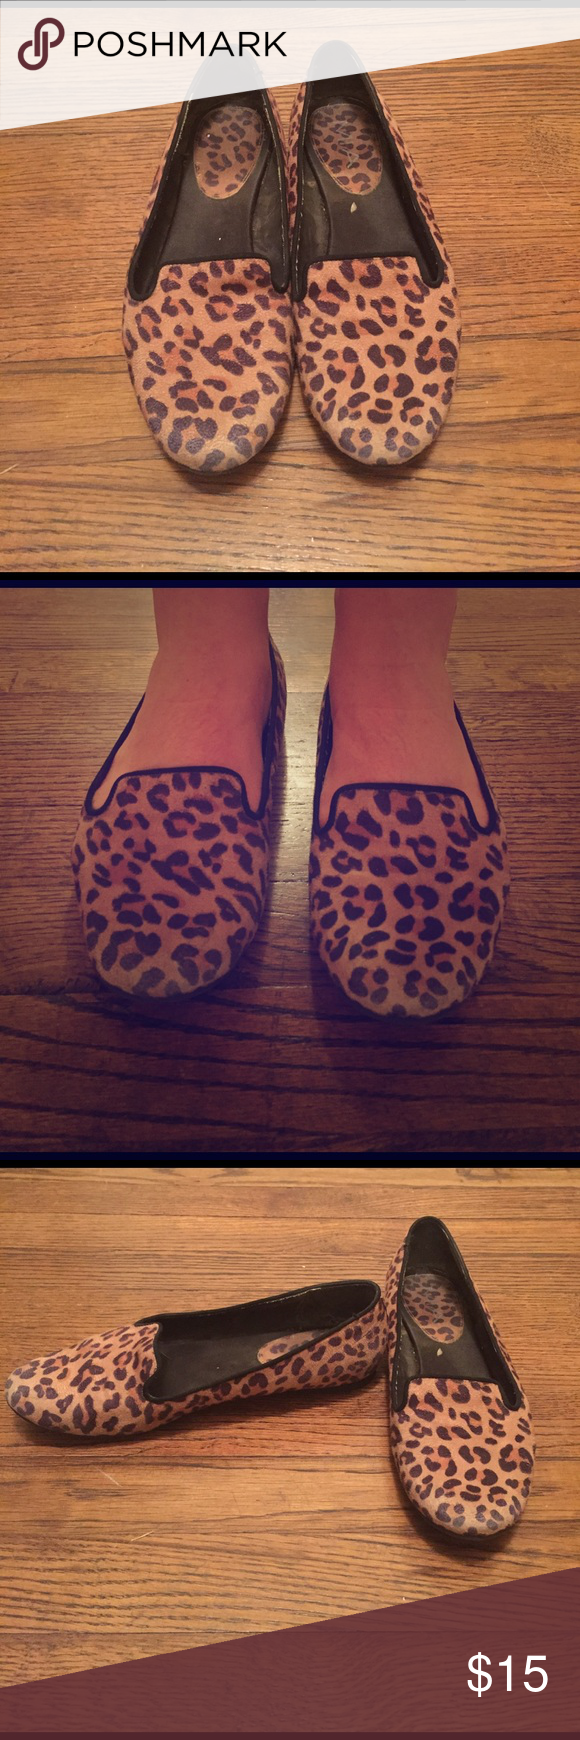 Leopard loafers Size 7.5, leopard print loafers. Cute and comfortable! Shoes Flats & Loafers